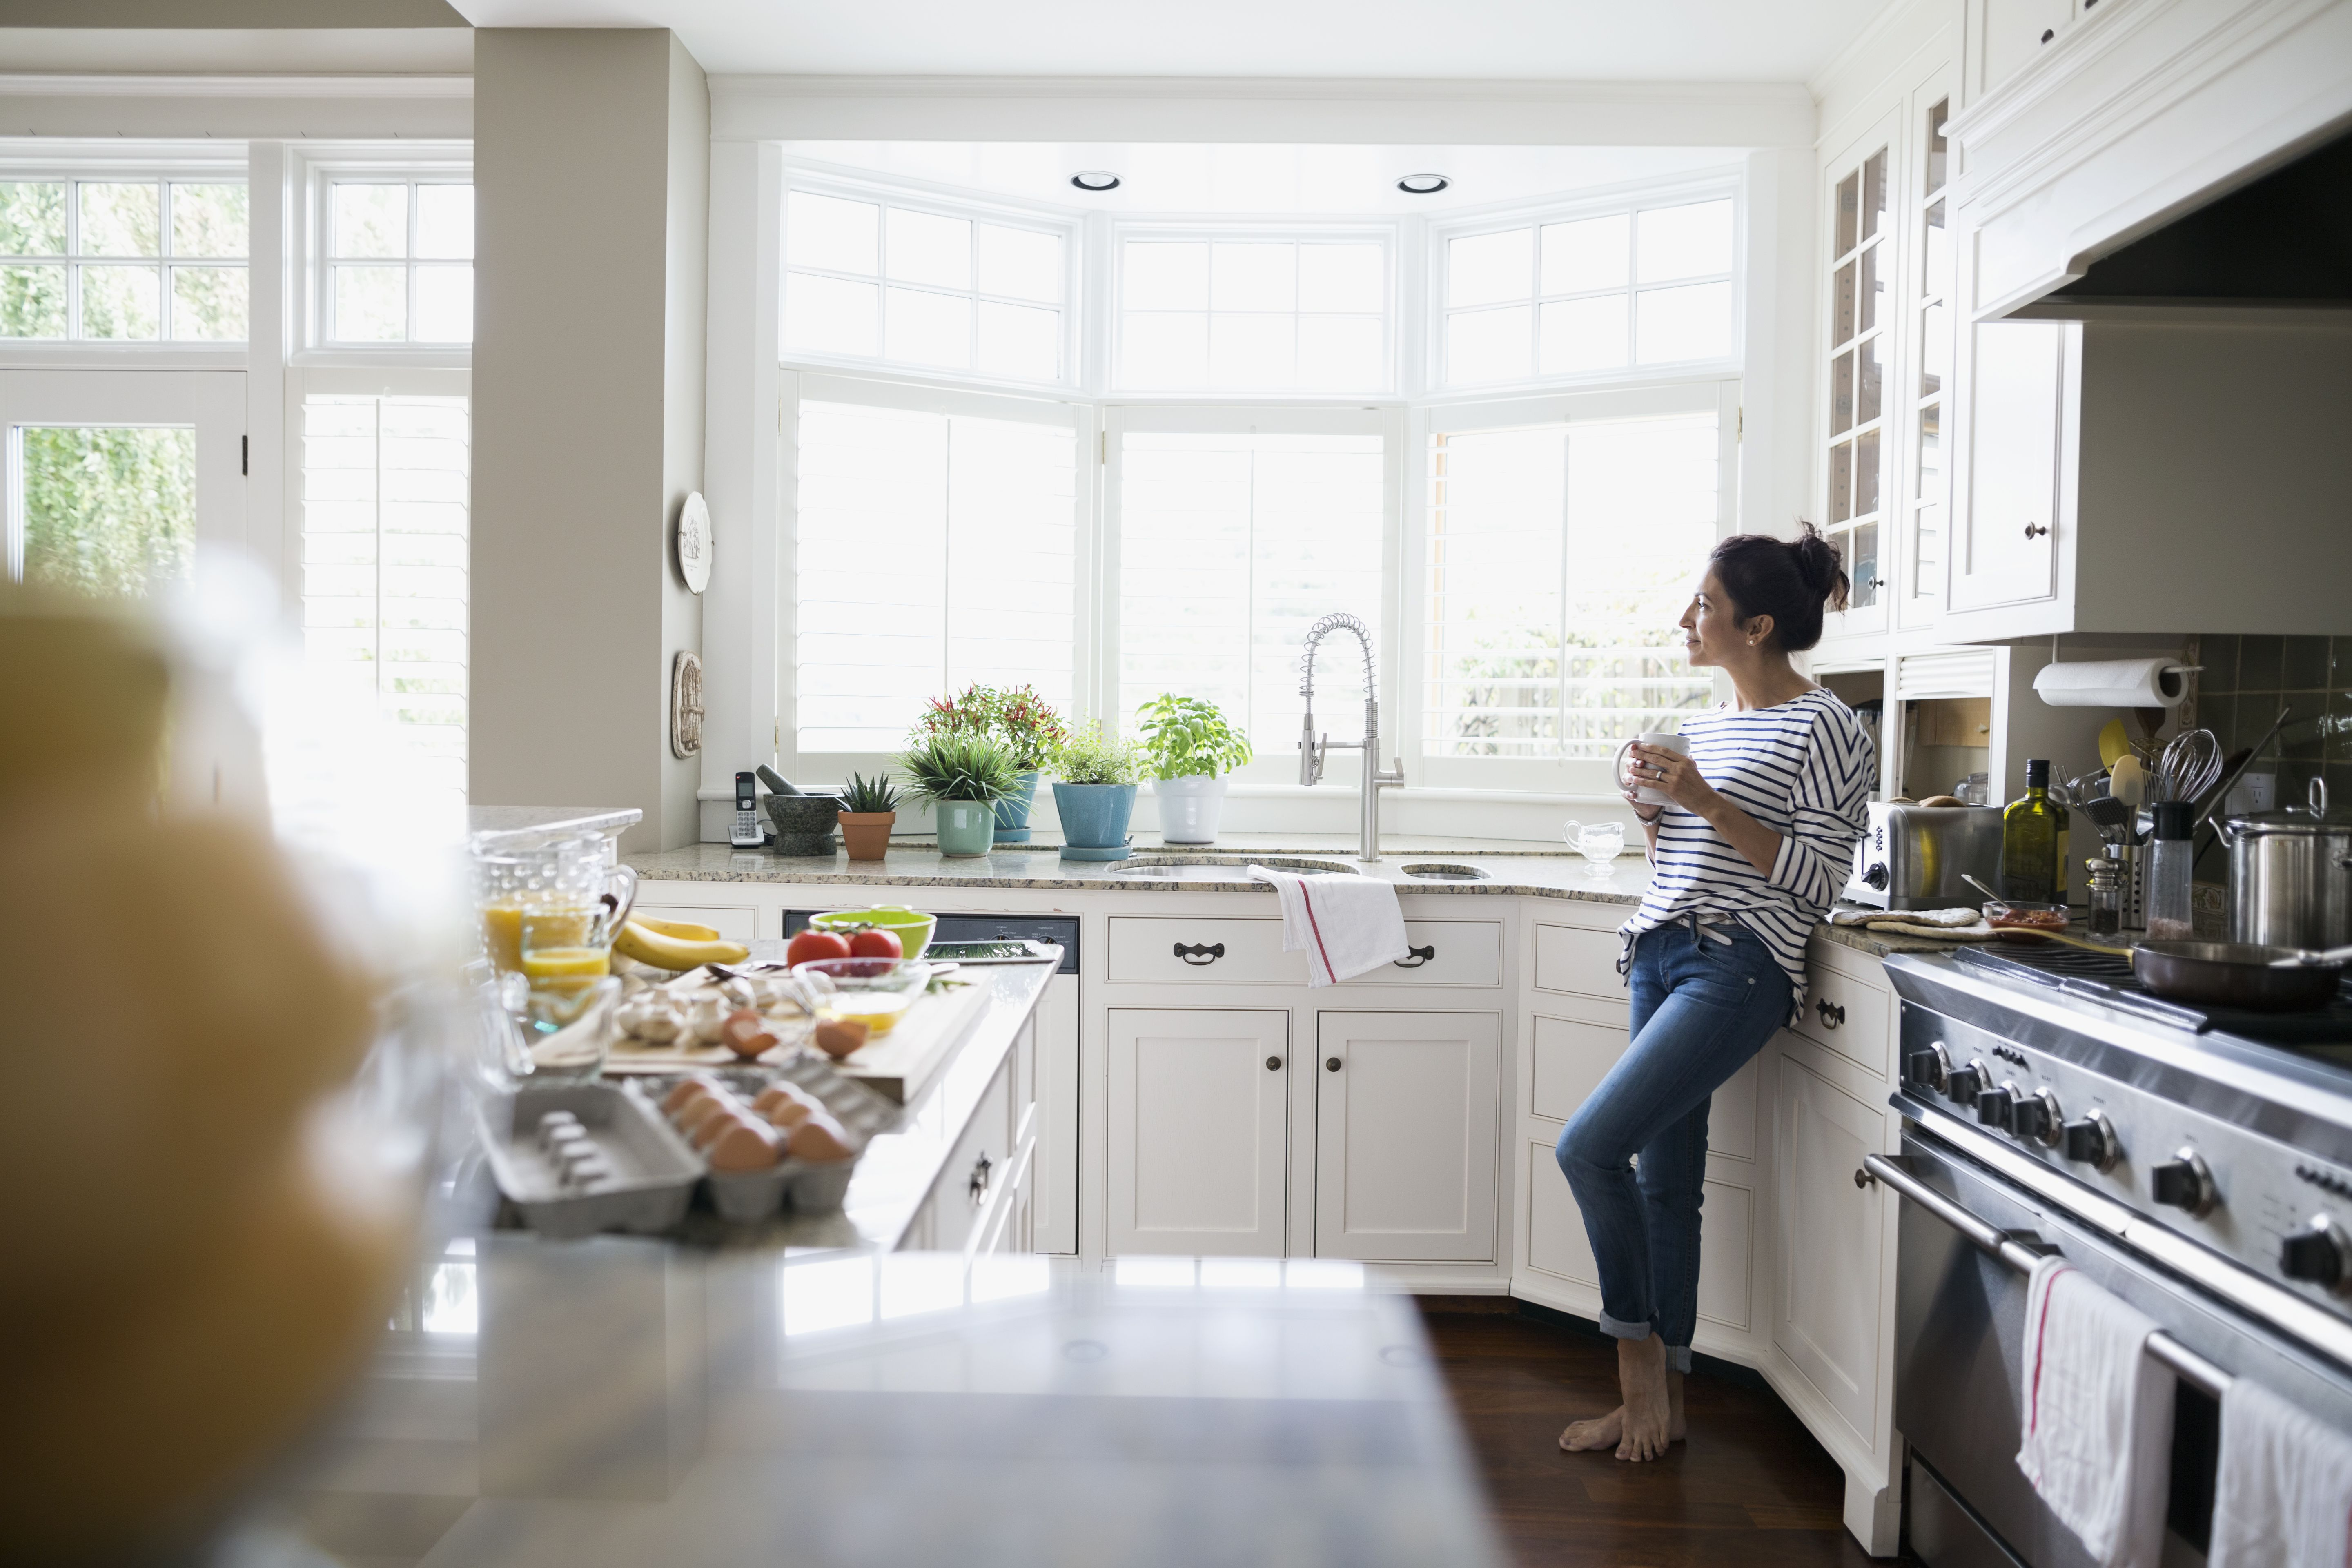 Pensive woman drinking coffee looking out window kitchen